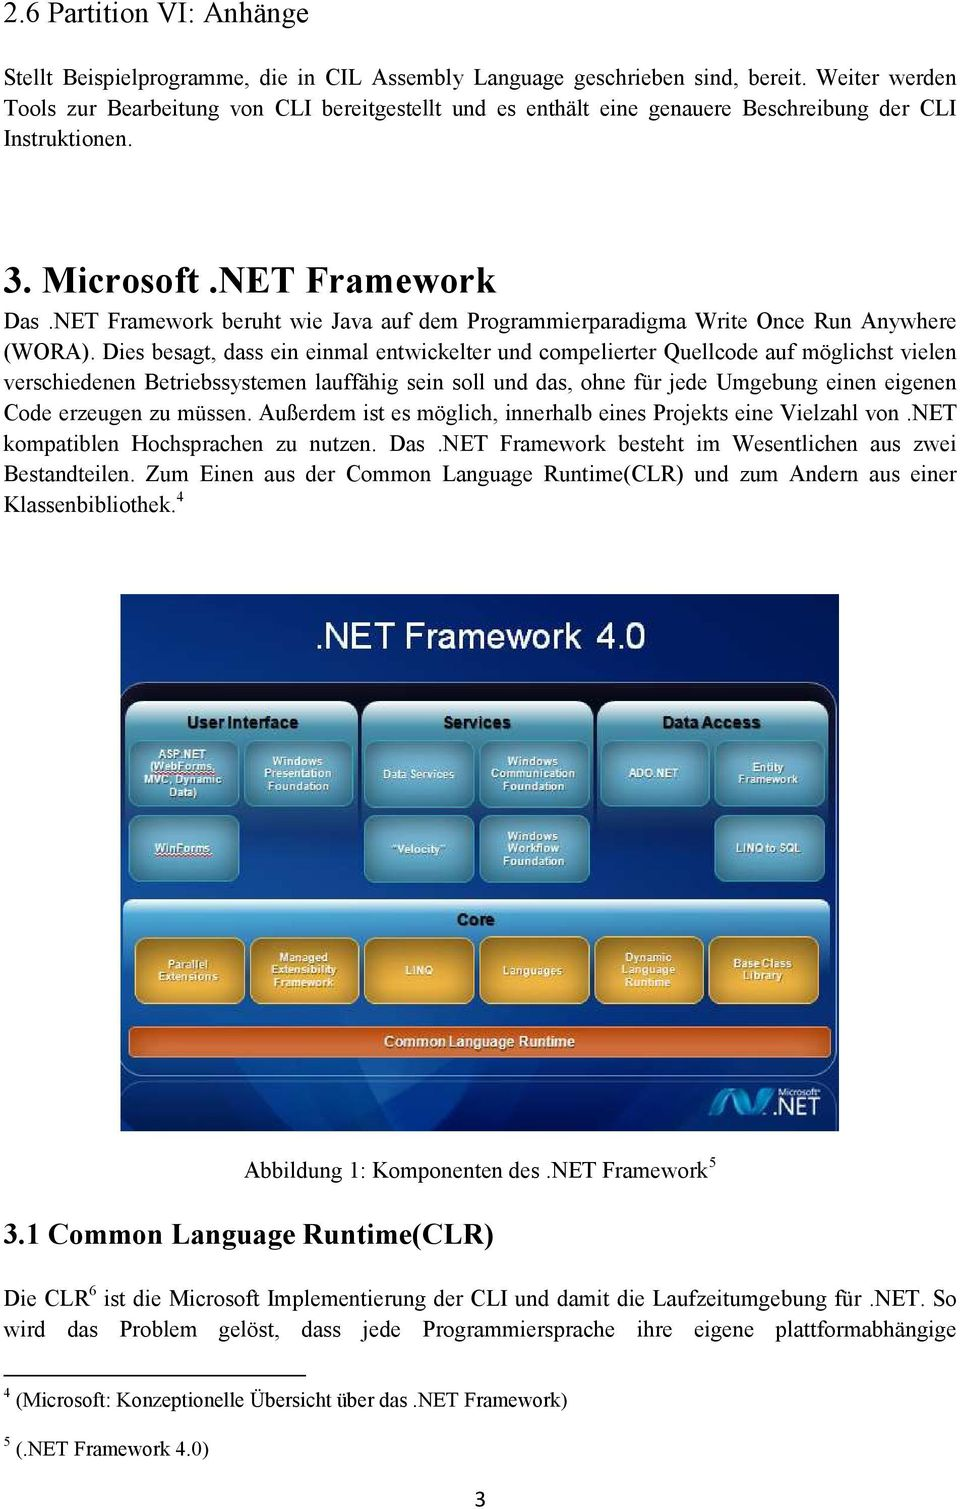 NET Framework beruht wie Java auf dem Programmierparadigma Write Once Run Anywhere (WORA).